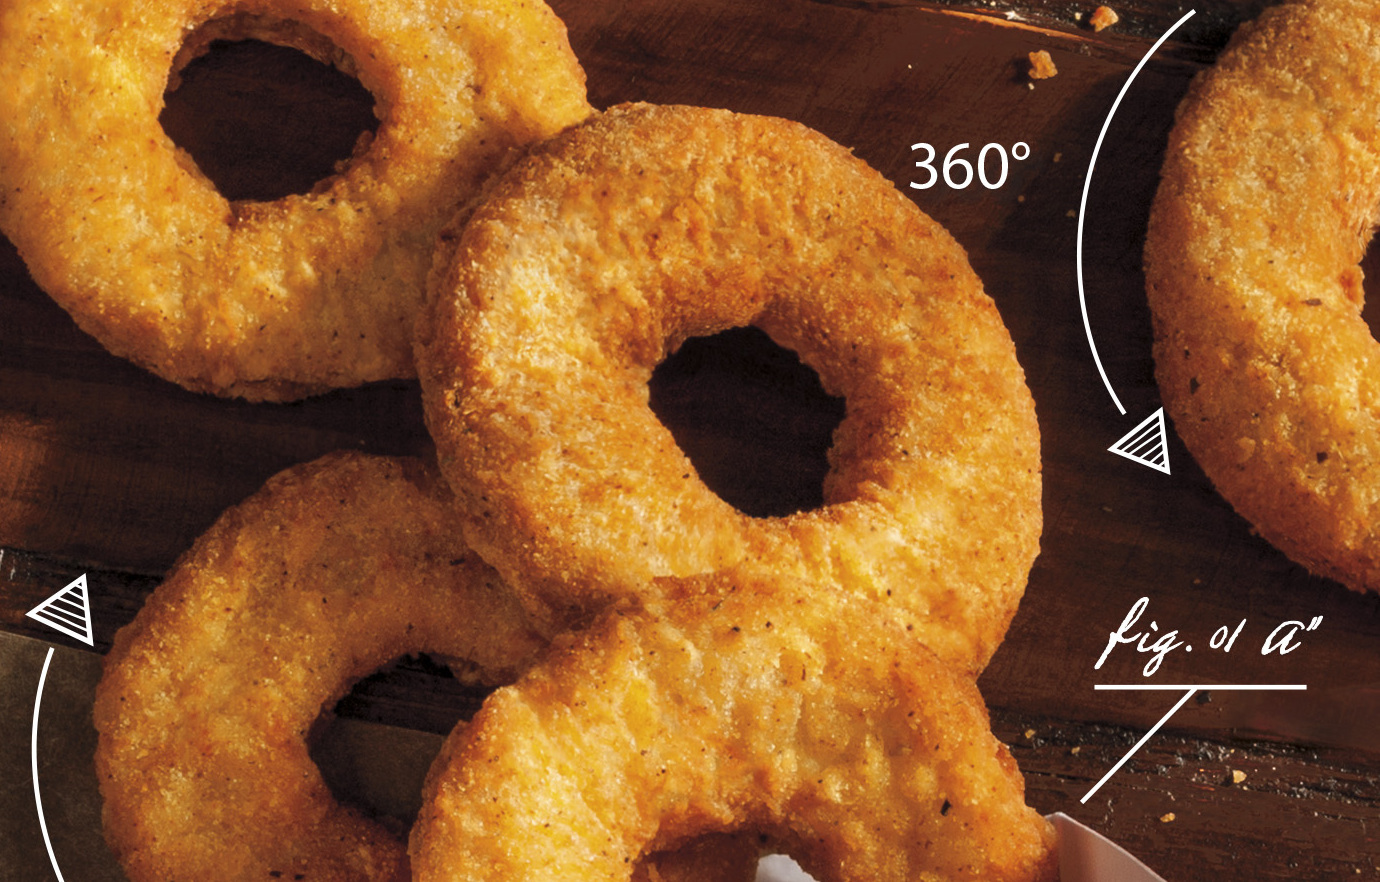 Burger King Will Sell Chicken Fries In Ring Form